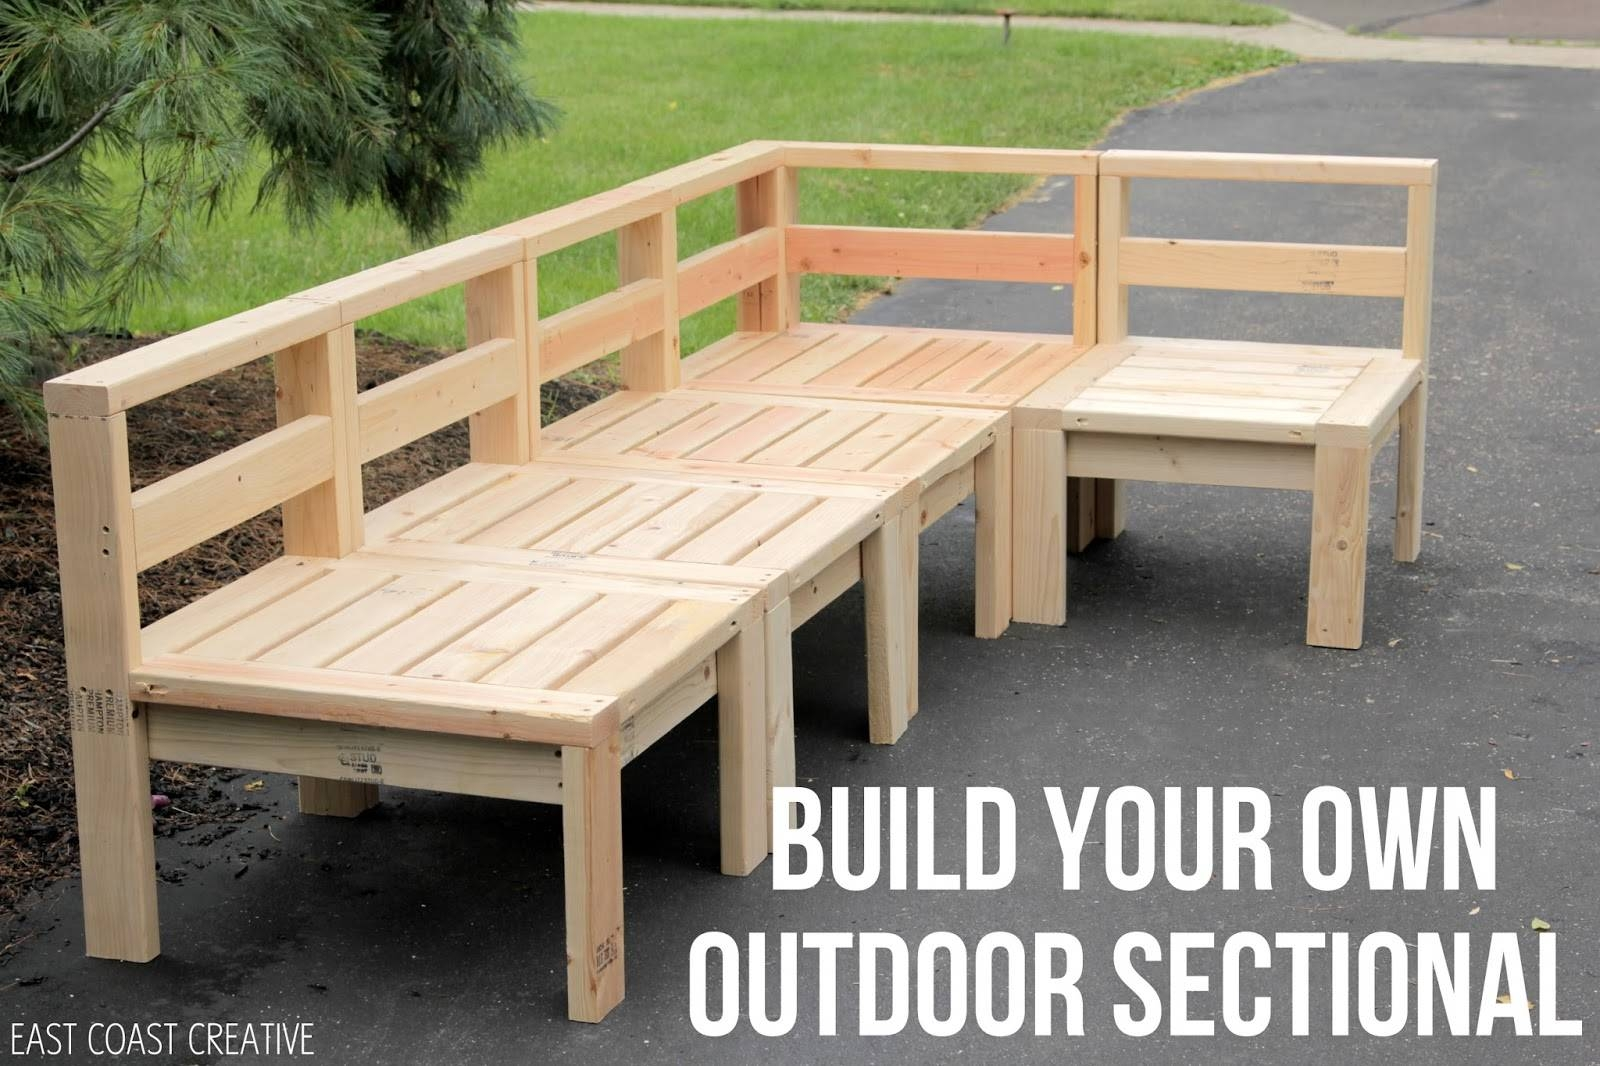 How To Build An Outdoor Sectional {Knock It Off} – East Coast Throughout Building A Sectional Sofas (View 8 of 15)